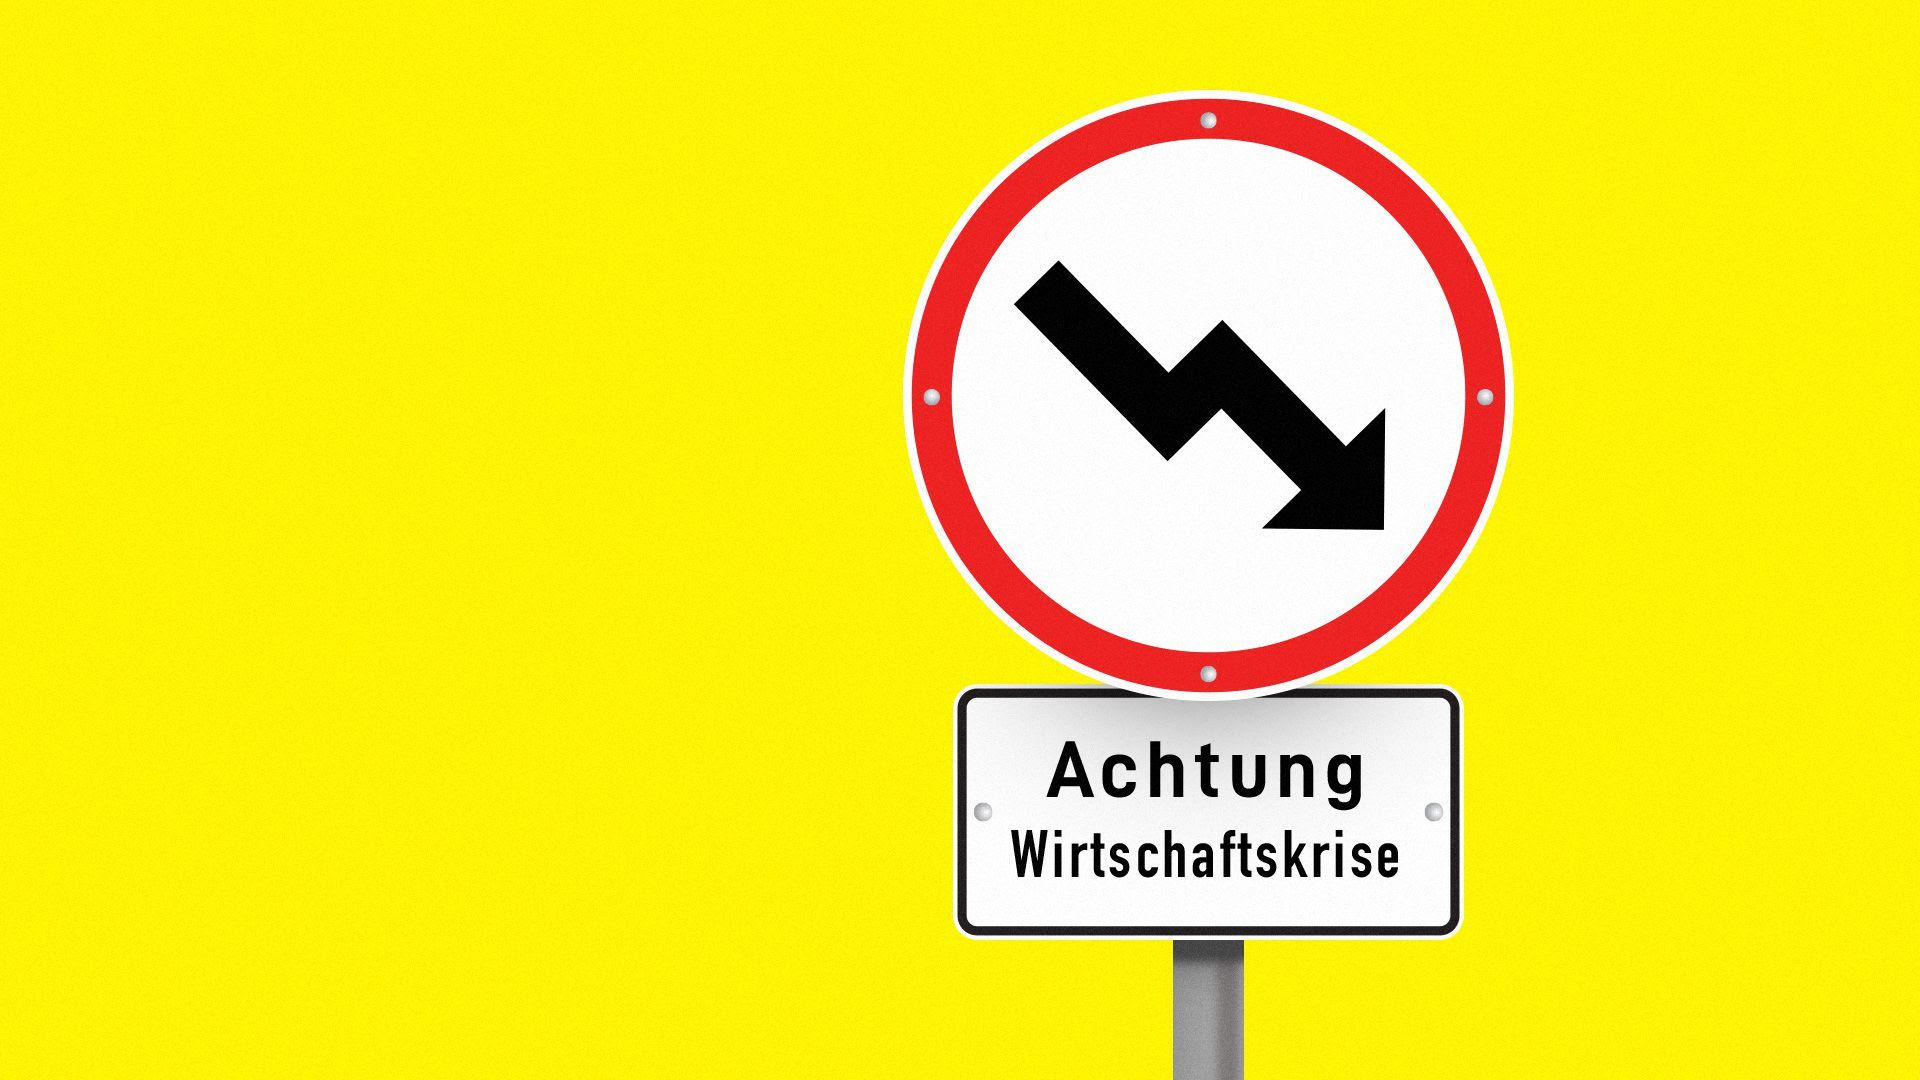 A sign in German warning us of an economic crisis